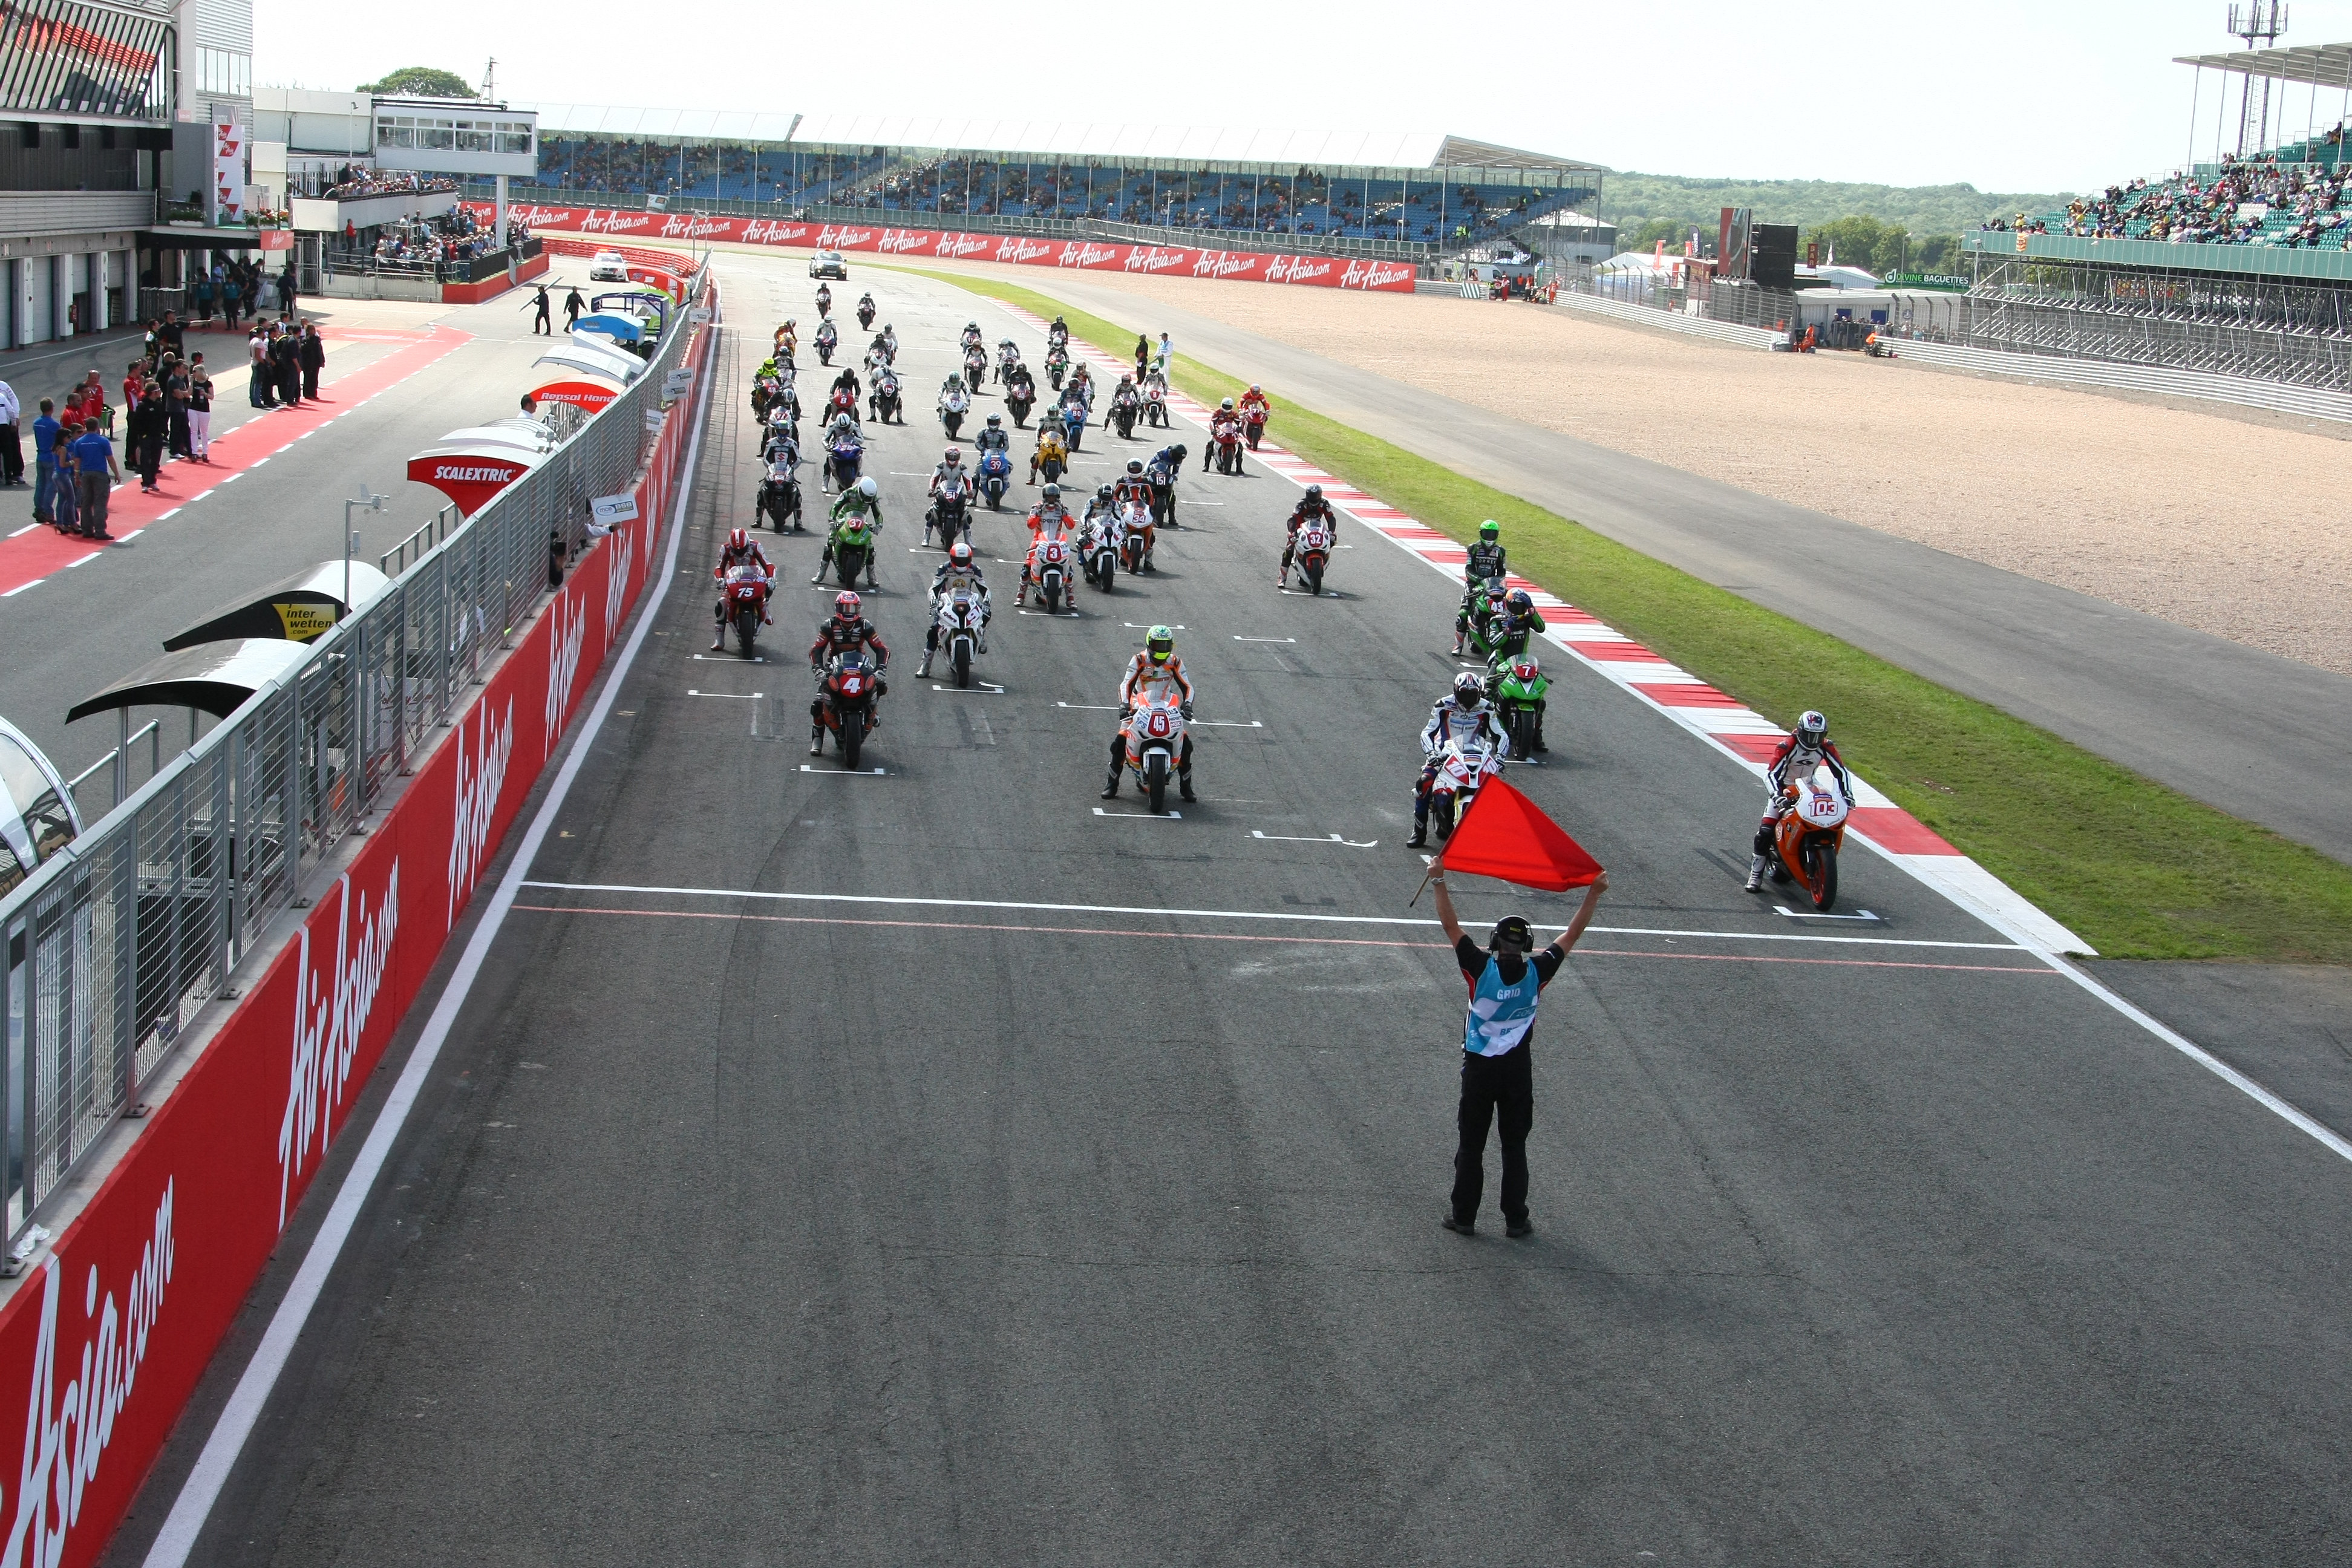 MSVR News - Silverstone 200 supporting the British Grand Prix